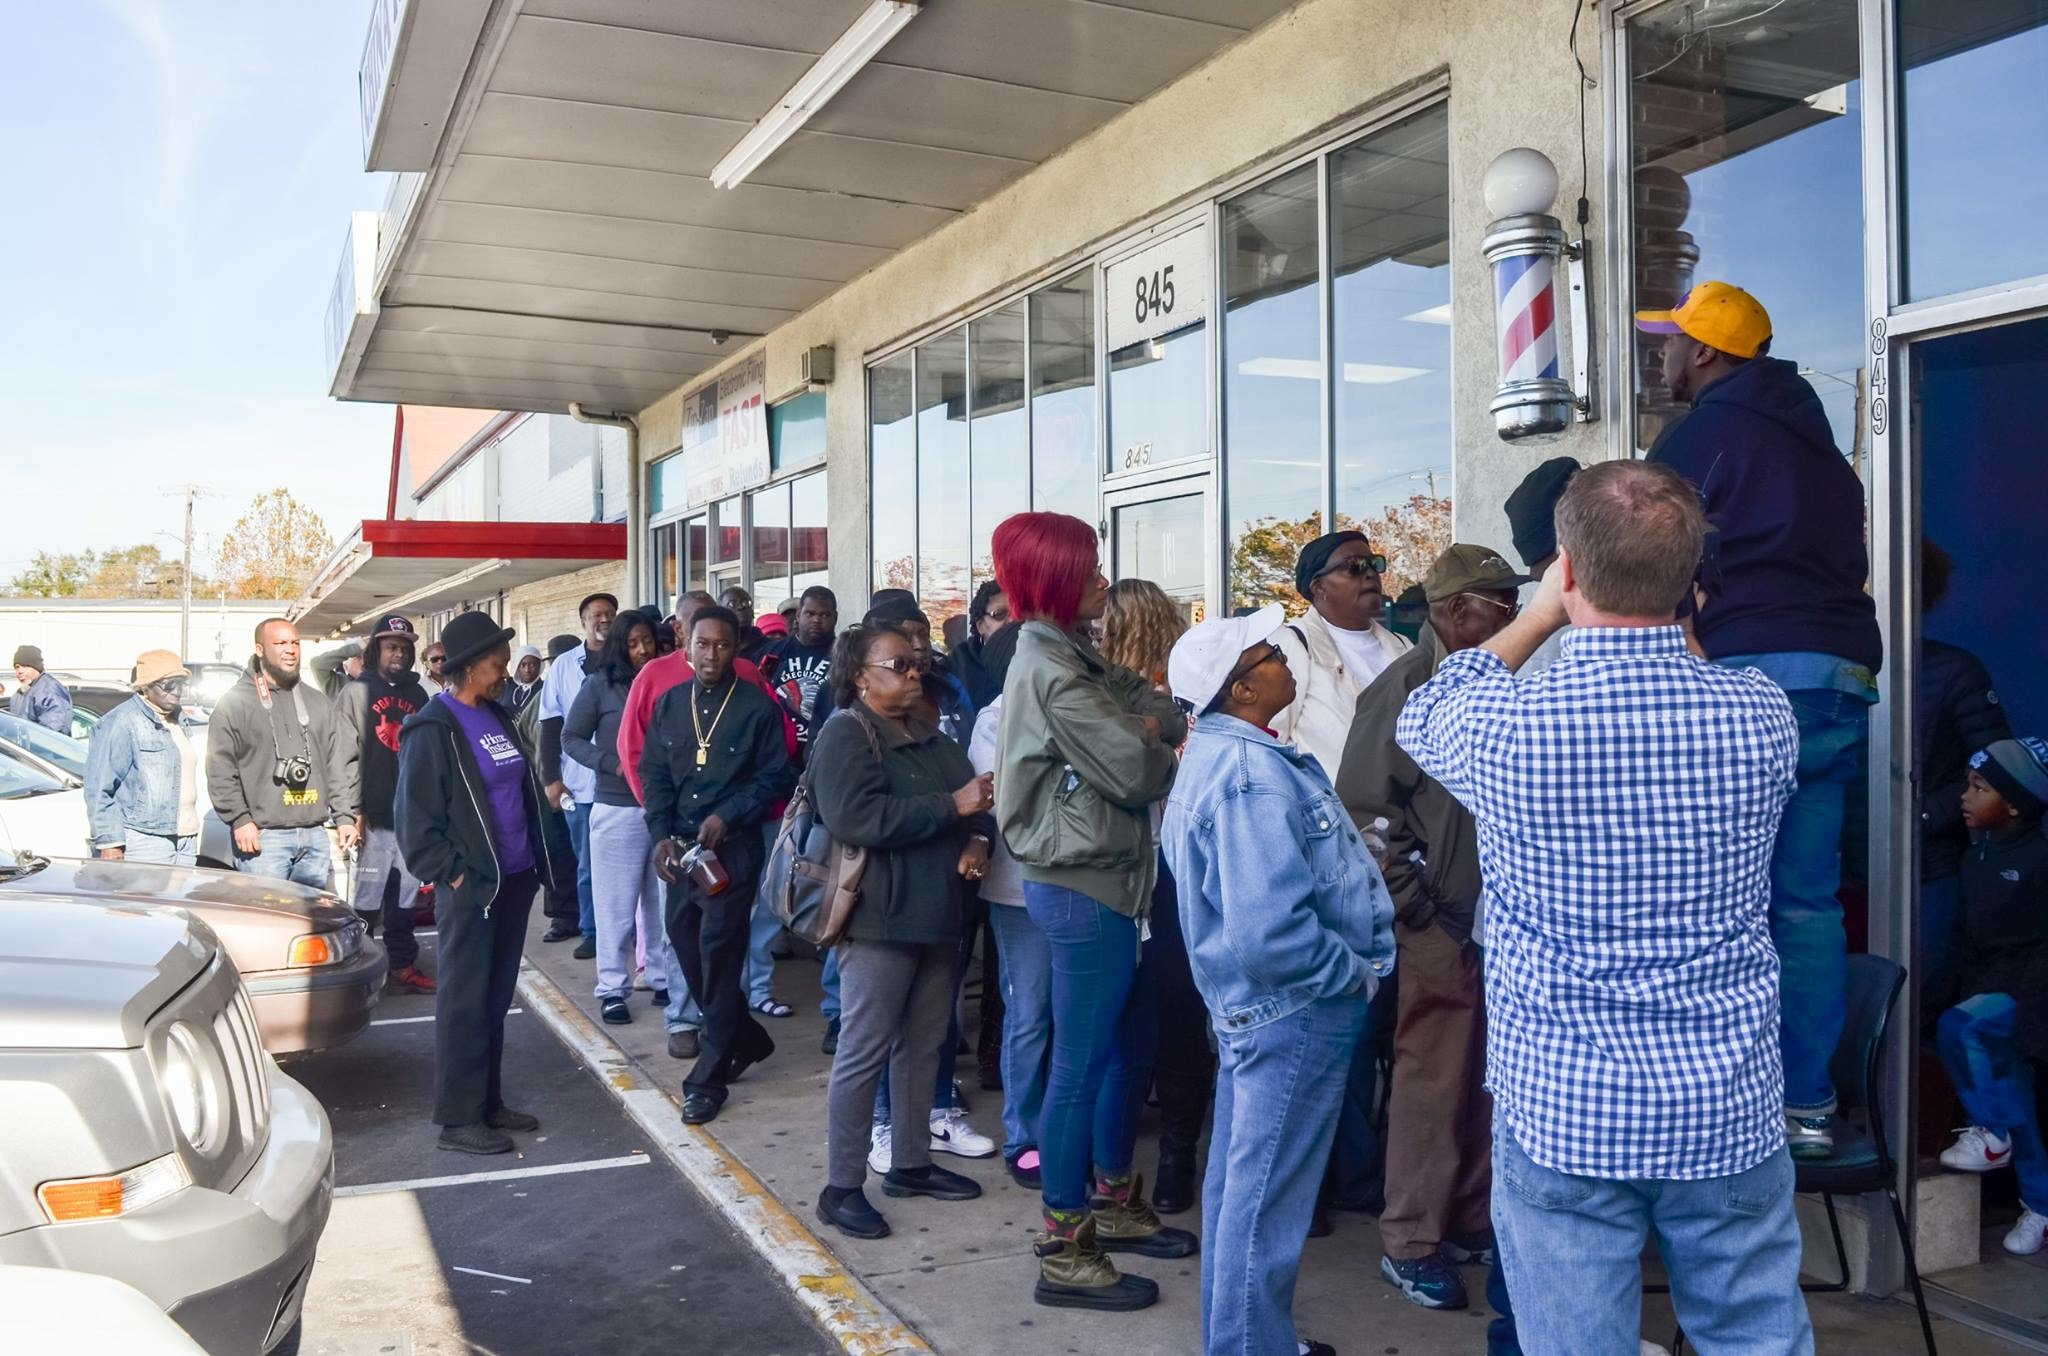 150+ People stood in line for a Free Turkey During Support The Port and On the Edge Barber Shop Turkey Bowl Tuesday(Free Turkey Giveaway